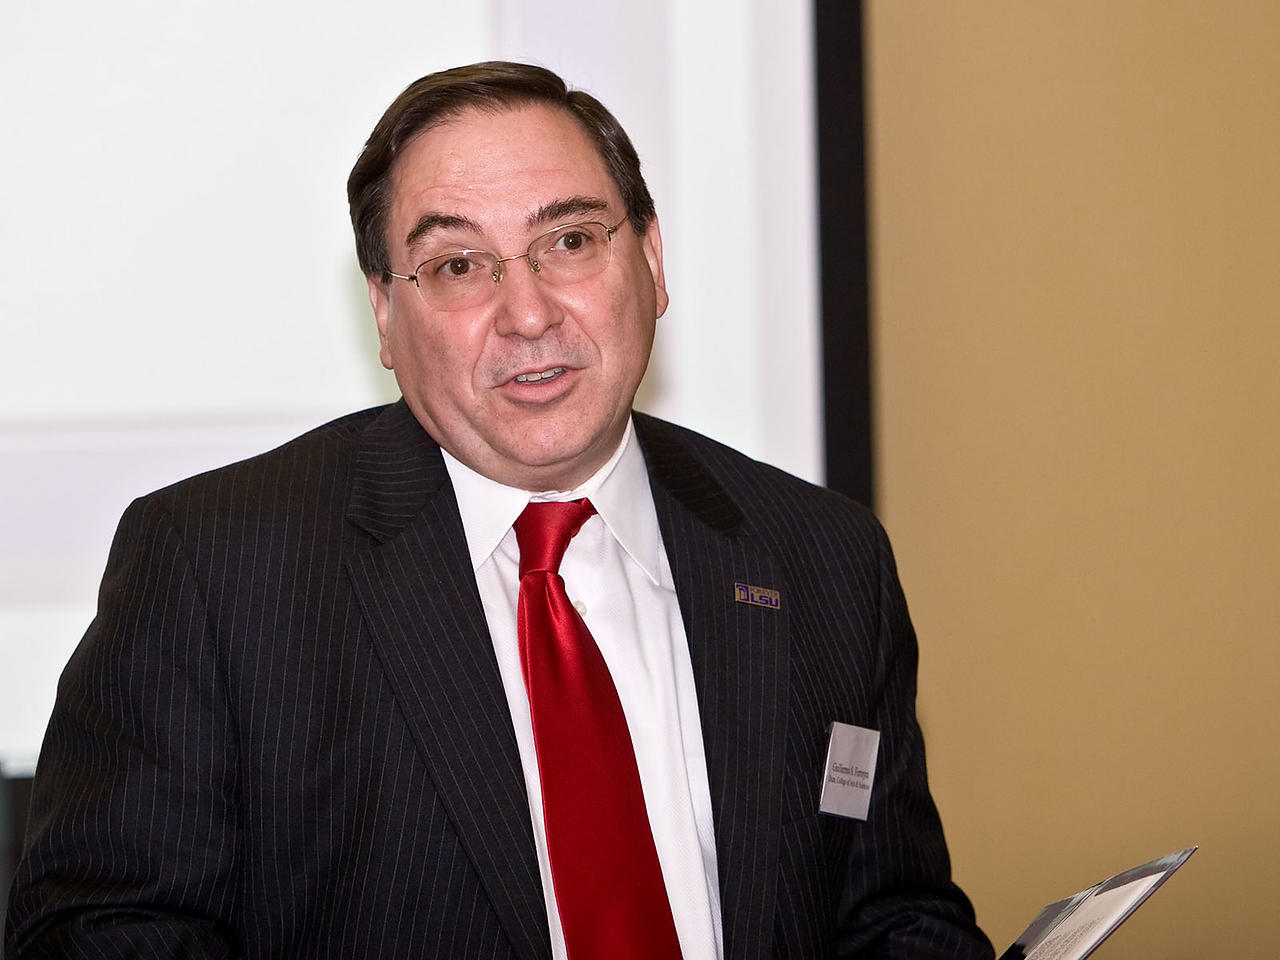 Dean of College of Arts and Sciences Guillermo Ferreyra